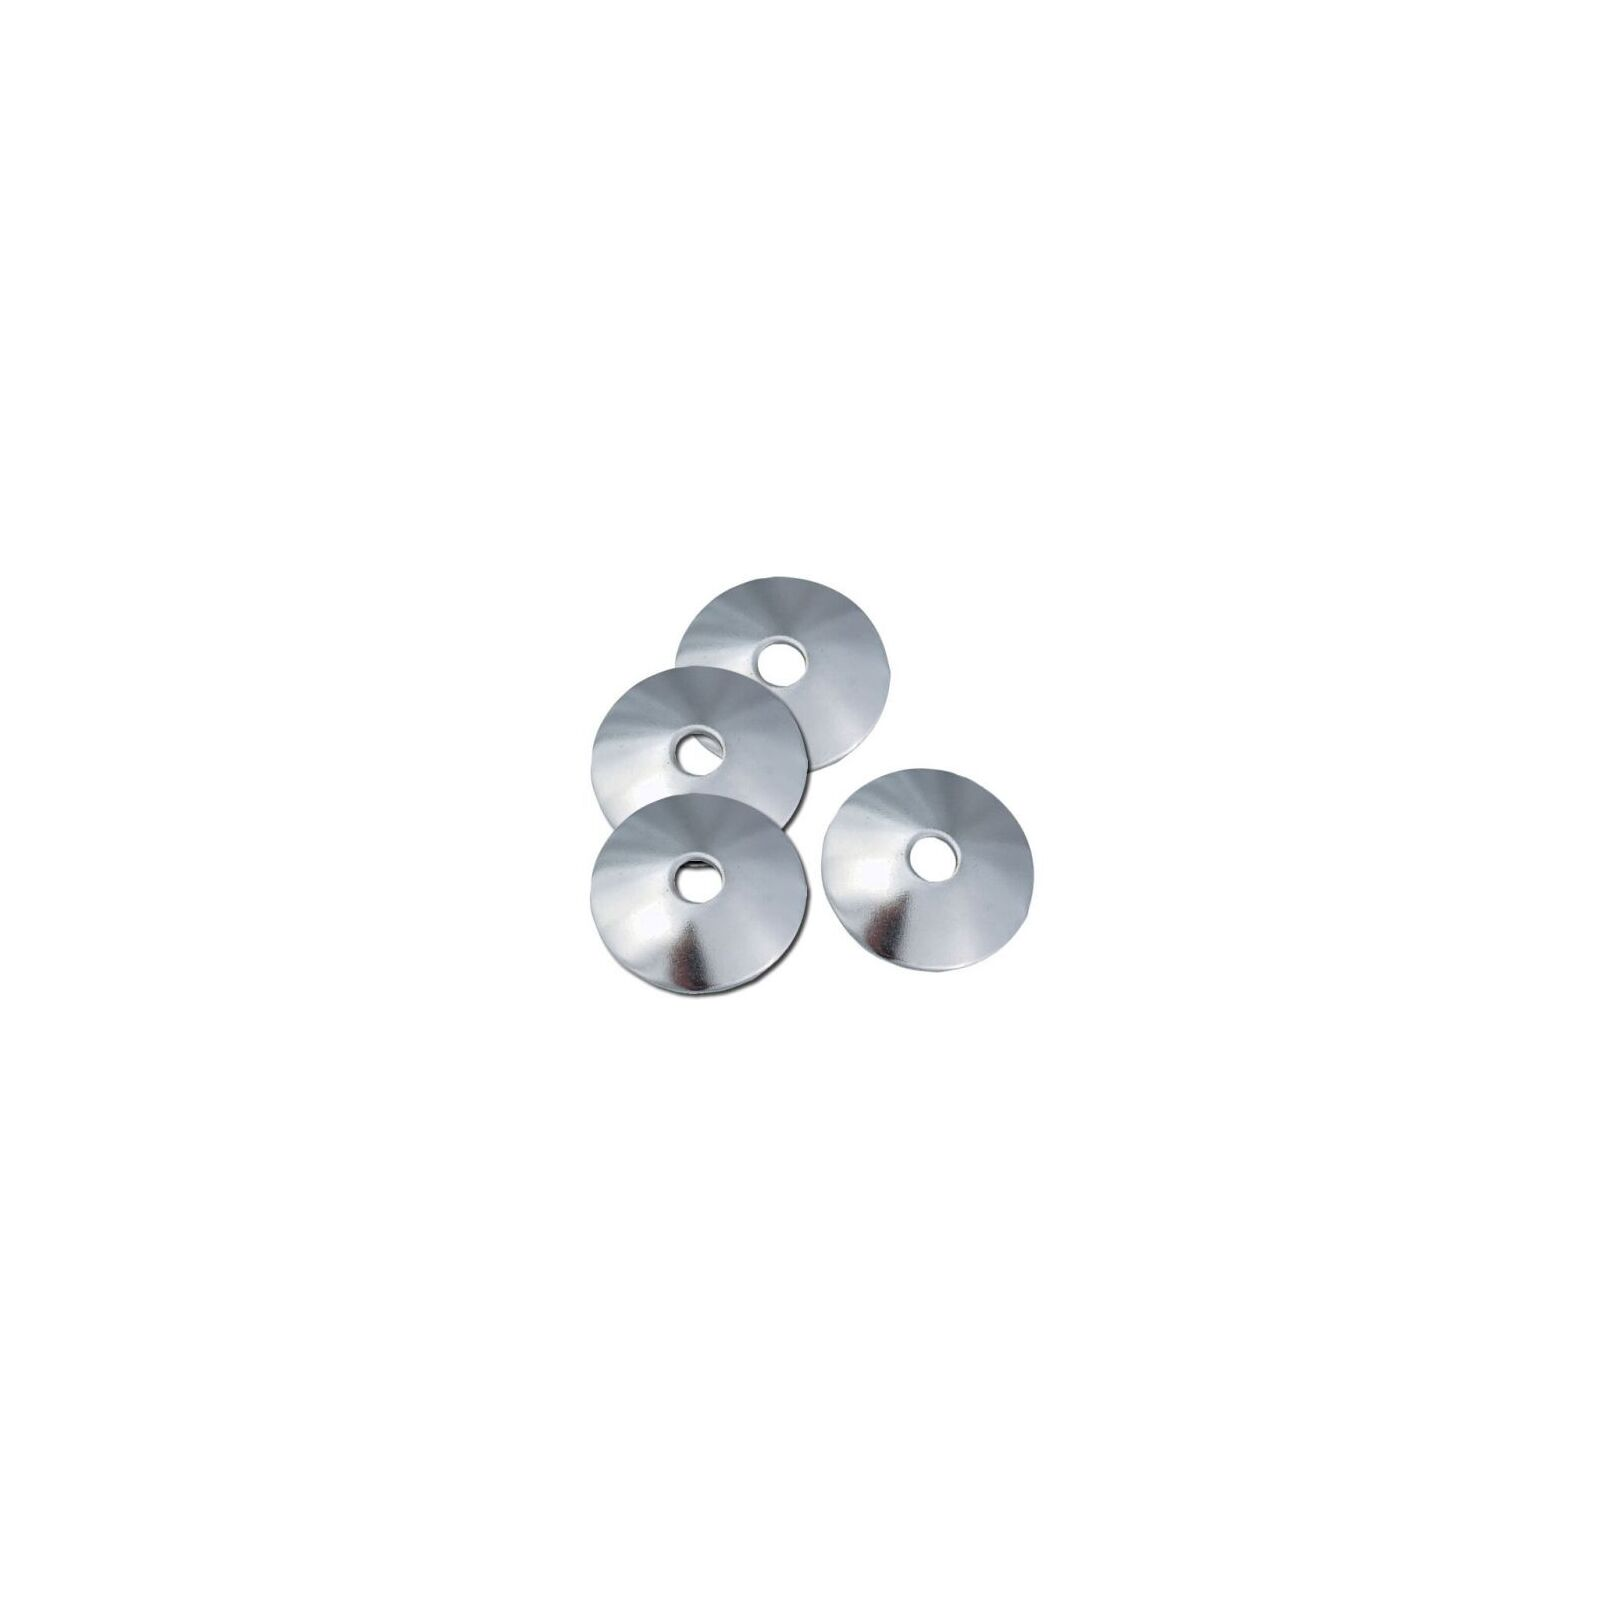 DIXON METAL CYMBAL WASHERS 4 PACK PAWSMCWHP